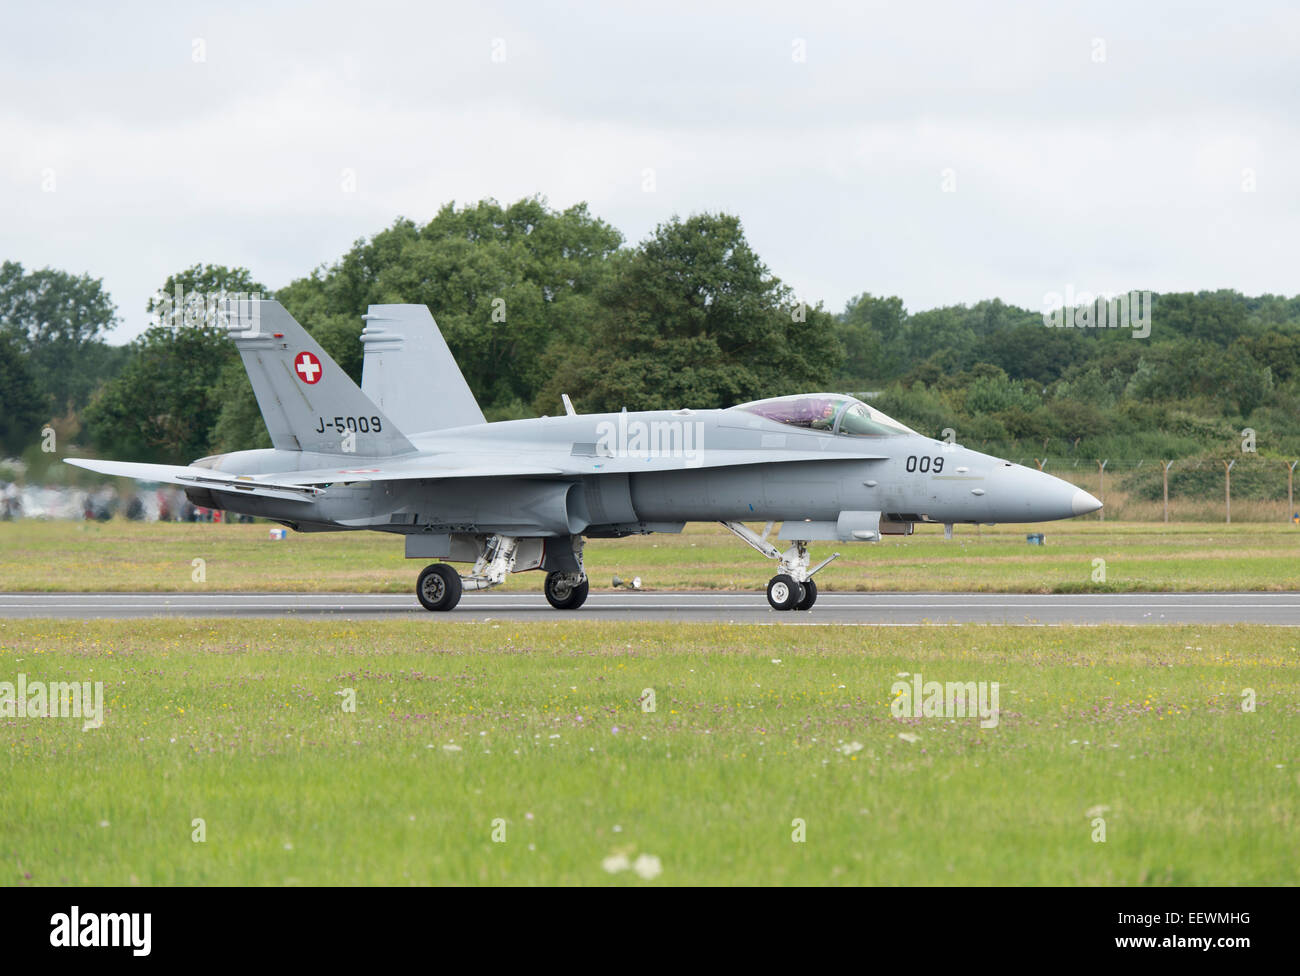 The pilot of the Swiss Air Force F/A-18C Hornet Military Jet Fighter waves to the crowd after completing his display - Stock Image